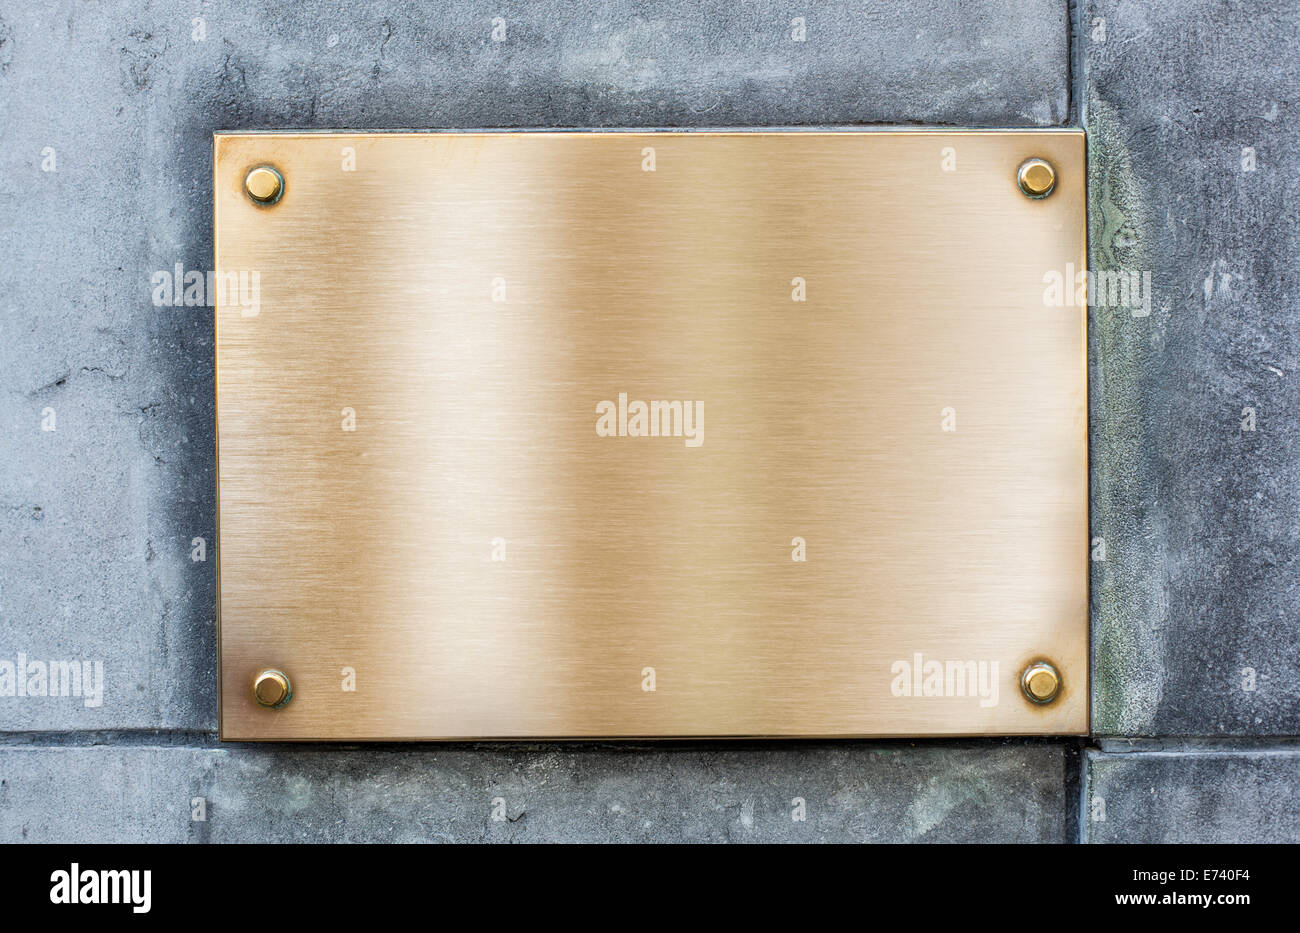 Old Wall Plaque Stock Photos & Old Wall Plaque Stock Images - Alamy